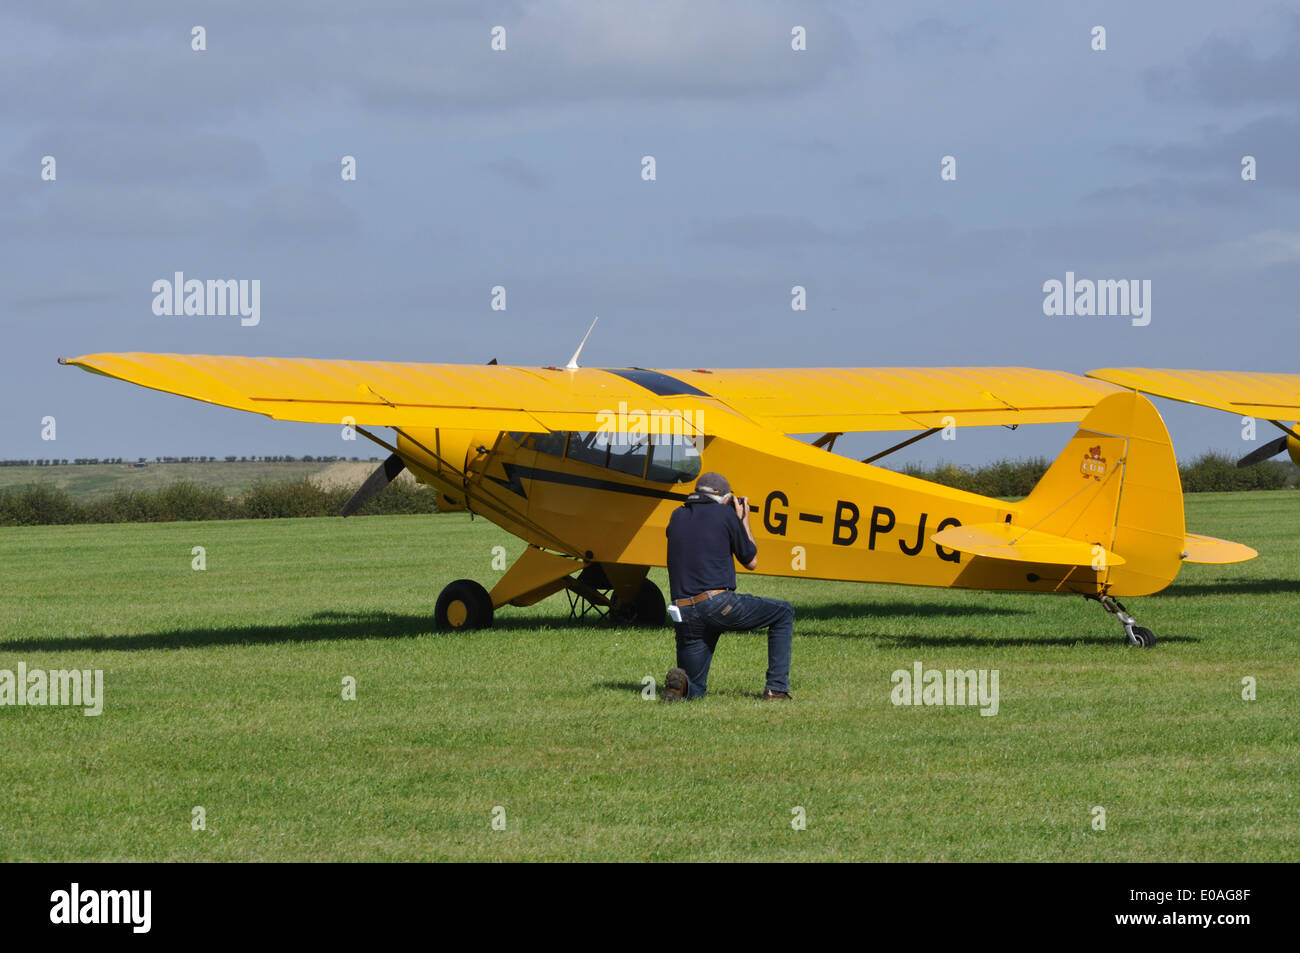 Aircraft enthusiast photographing 1965 Piper PA-18-150 Super Cub G-BPJG at Compton Abbas Airfield, Dorset. - Stock Image